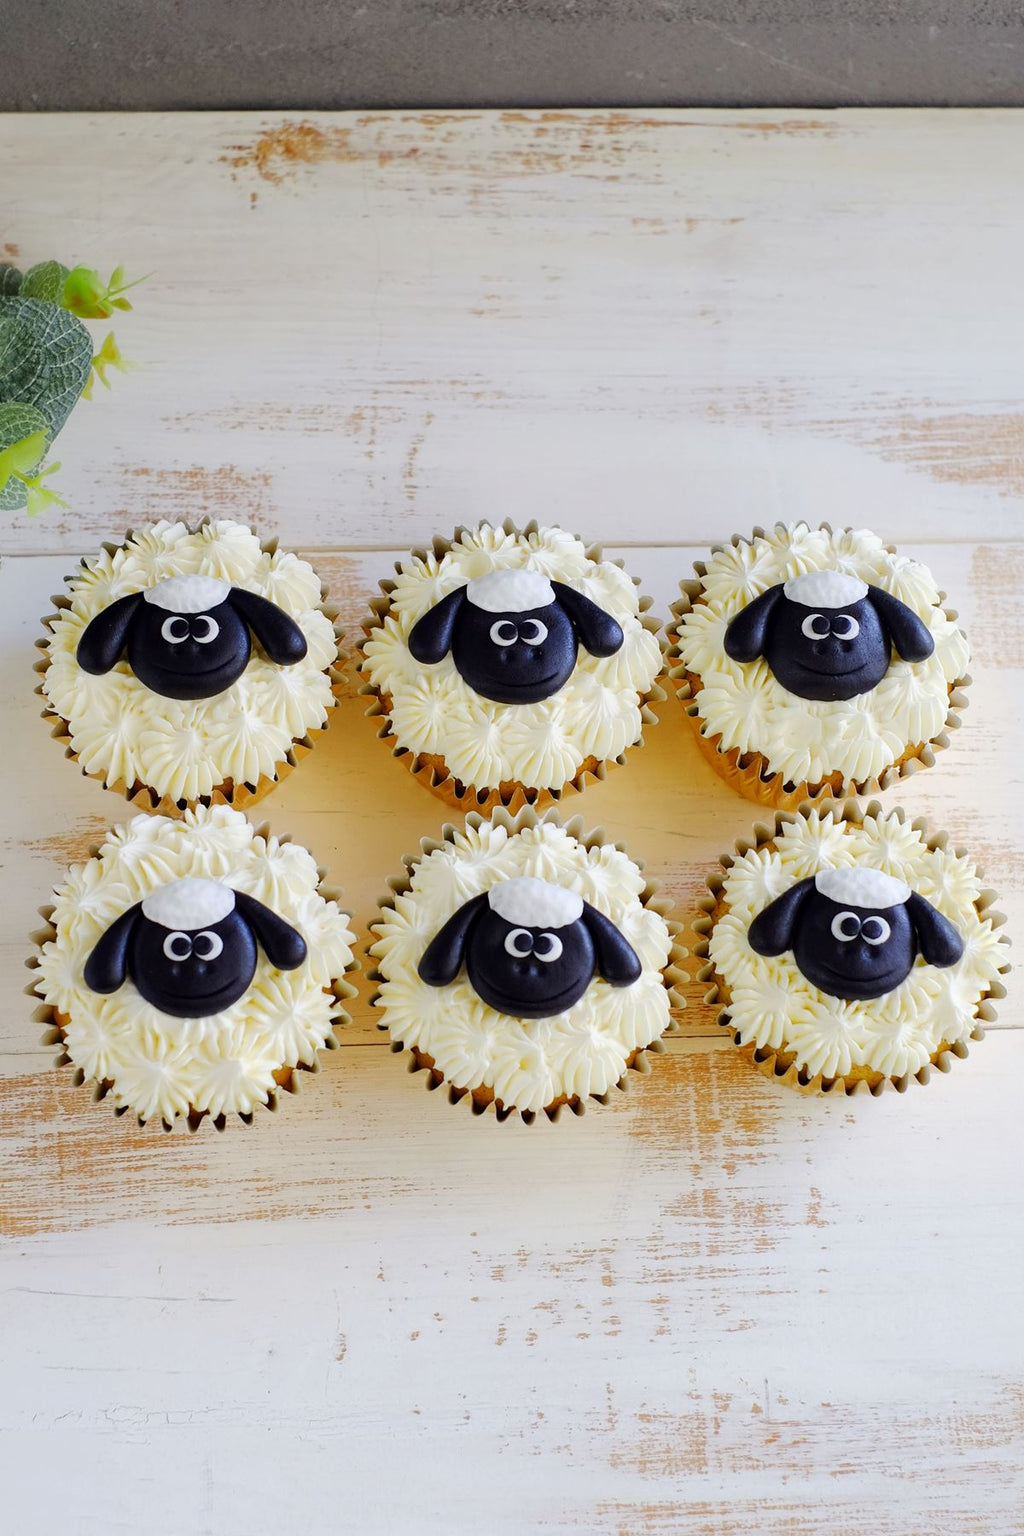 Little Sheep Cupcakes ($7.50/Pc)